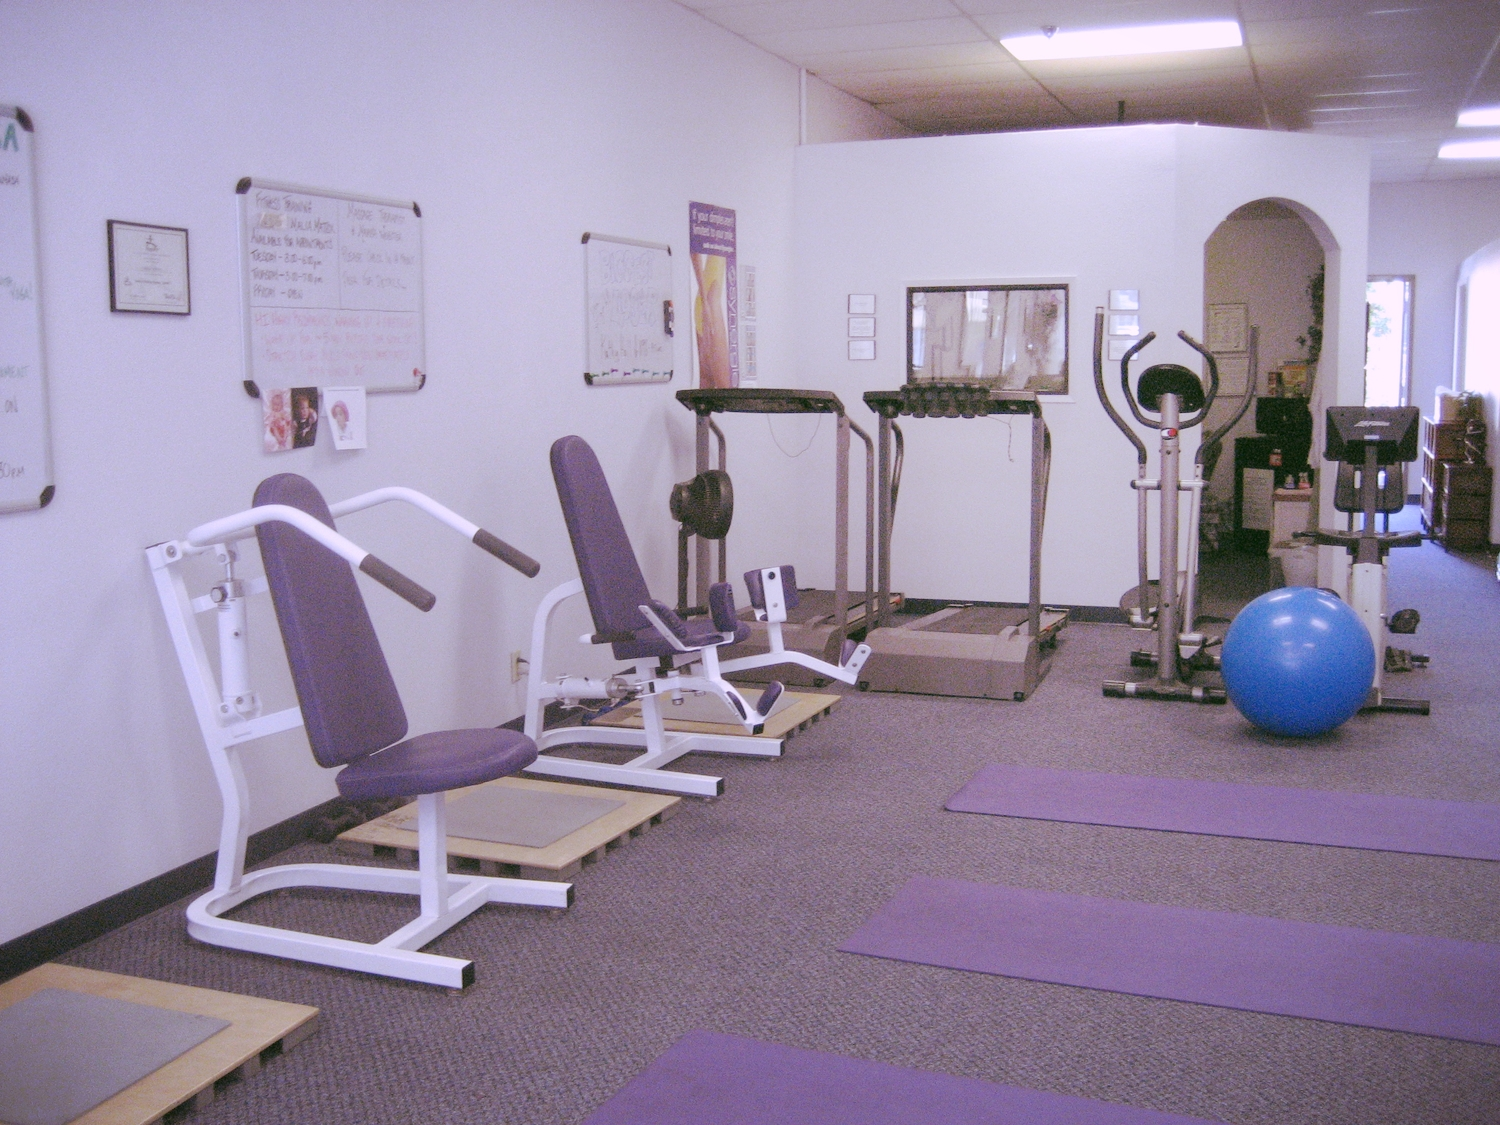 Healthy Inspirations Facility 12-02-08 009.jpg